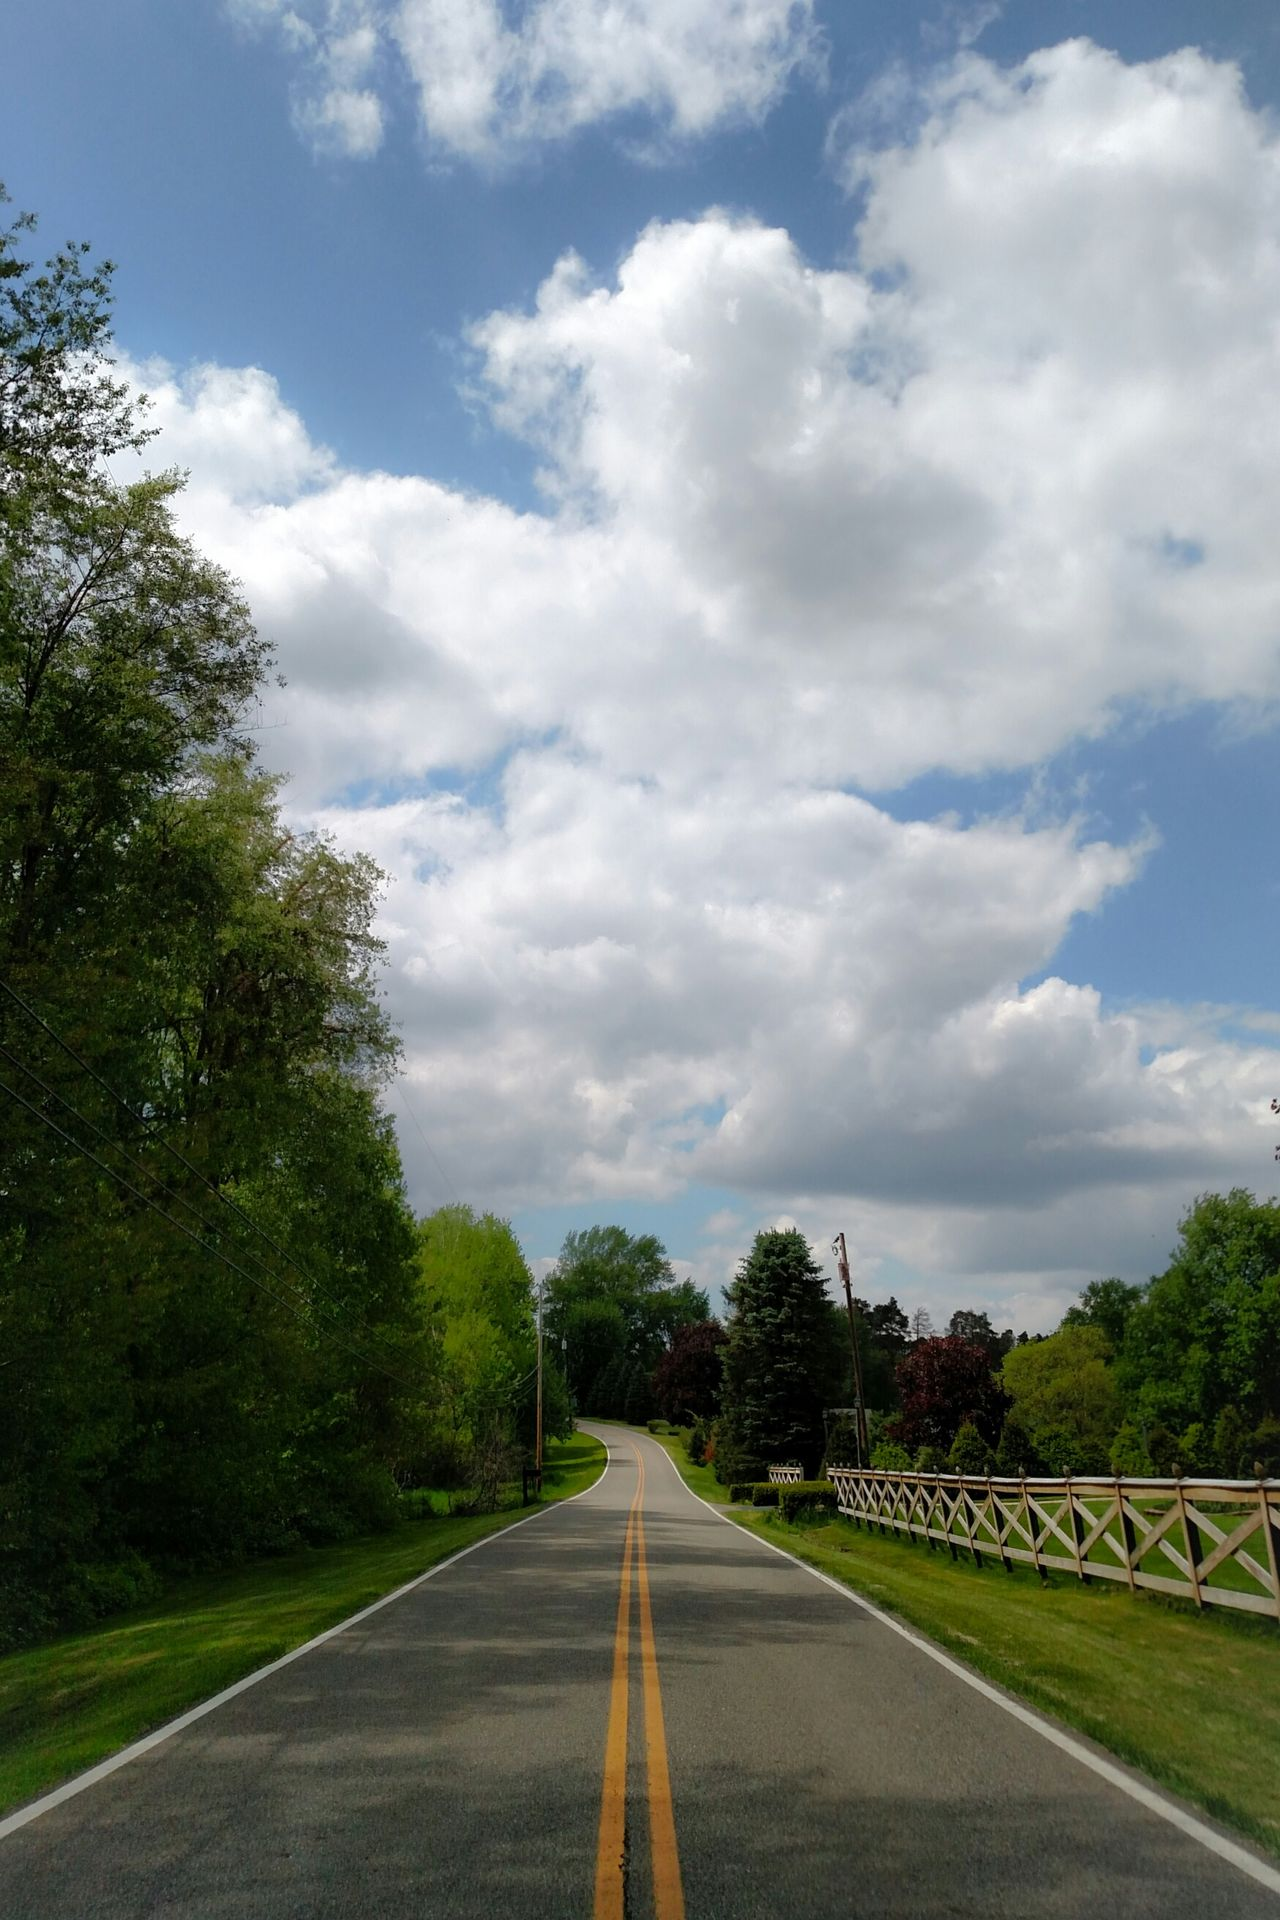 Todays Weather Report Blue Sky And Clouds Blue Sky White Clouds My Hometown East Liverpool Ohio, USA My Street Where I Live Where I Am Where I Come From The Great Outdoors With Adobe Simple Photography Through My Lens Trees And Sky Ladyphotographerofthemonth Femalephotographerofthemonth Look Up And See Beauty My Cloud Obsession☁️ Tree Lover